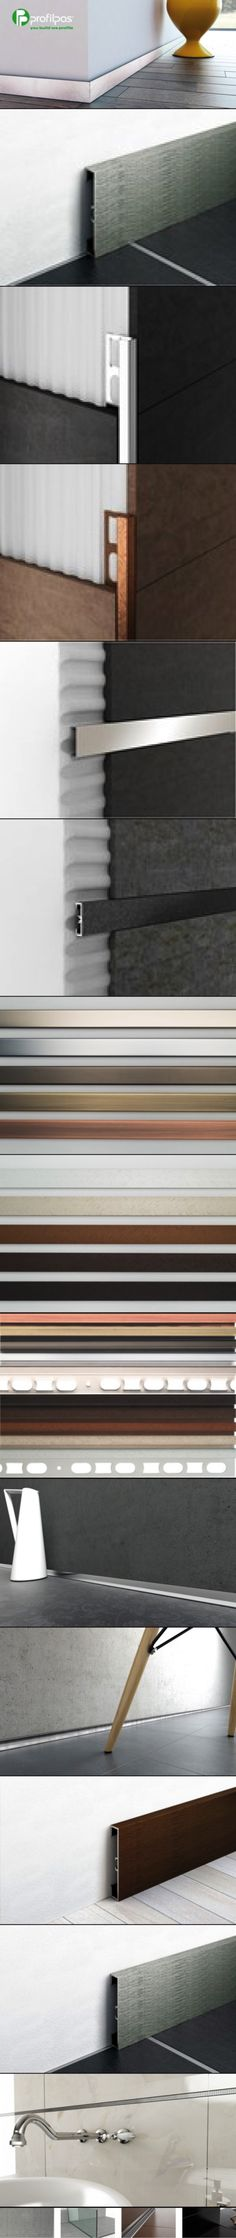 Profilpas Design A new line of profiles and skirting boards Prolist Design  Chromium stainless steel S Design and anodized aluminium X Design, two new finishes for decorative listellos. New colors that allow a wide range of approaches, created for interior designers and architects, based on the latest trends in modern design.